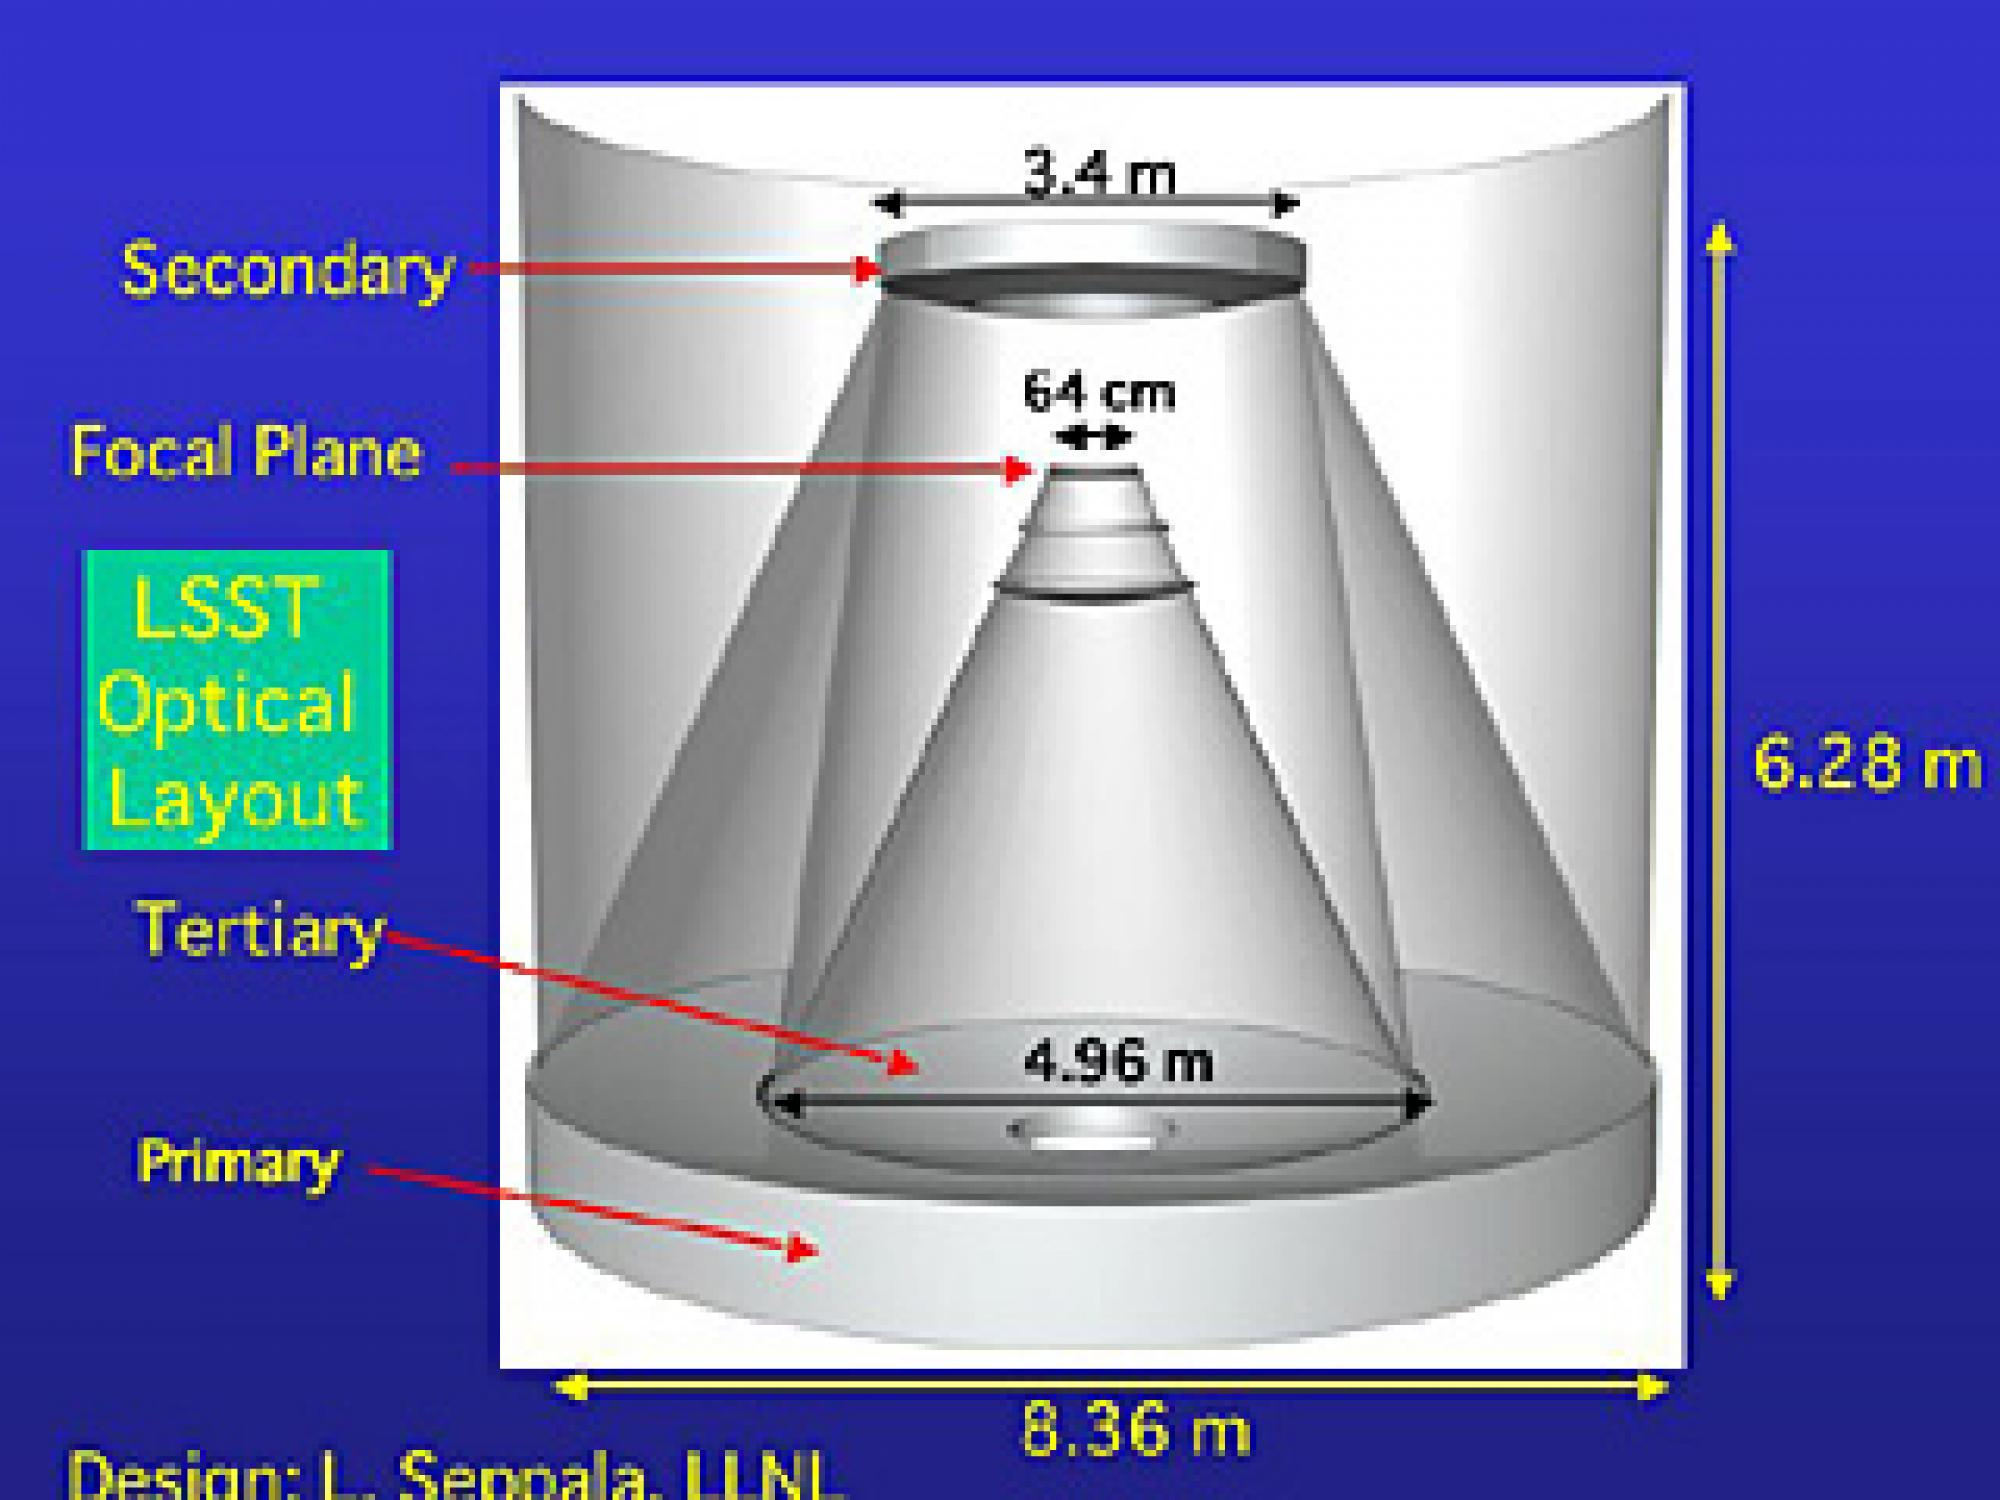 LSST optics combine three mirrors for a powerful wide-angle view of the sky.